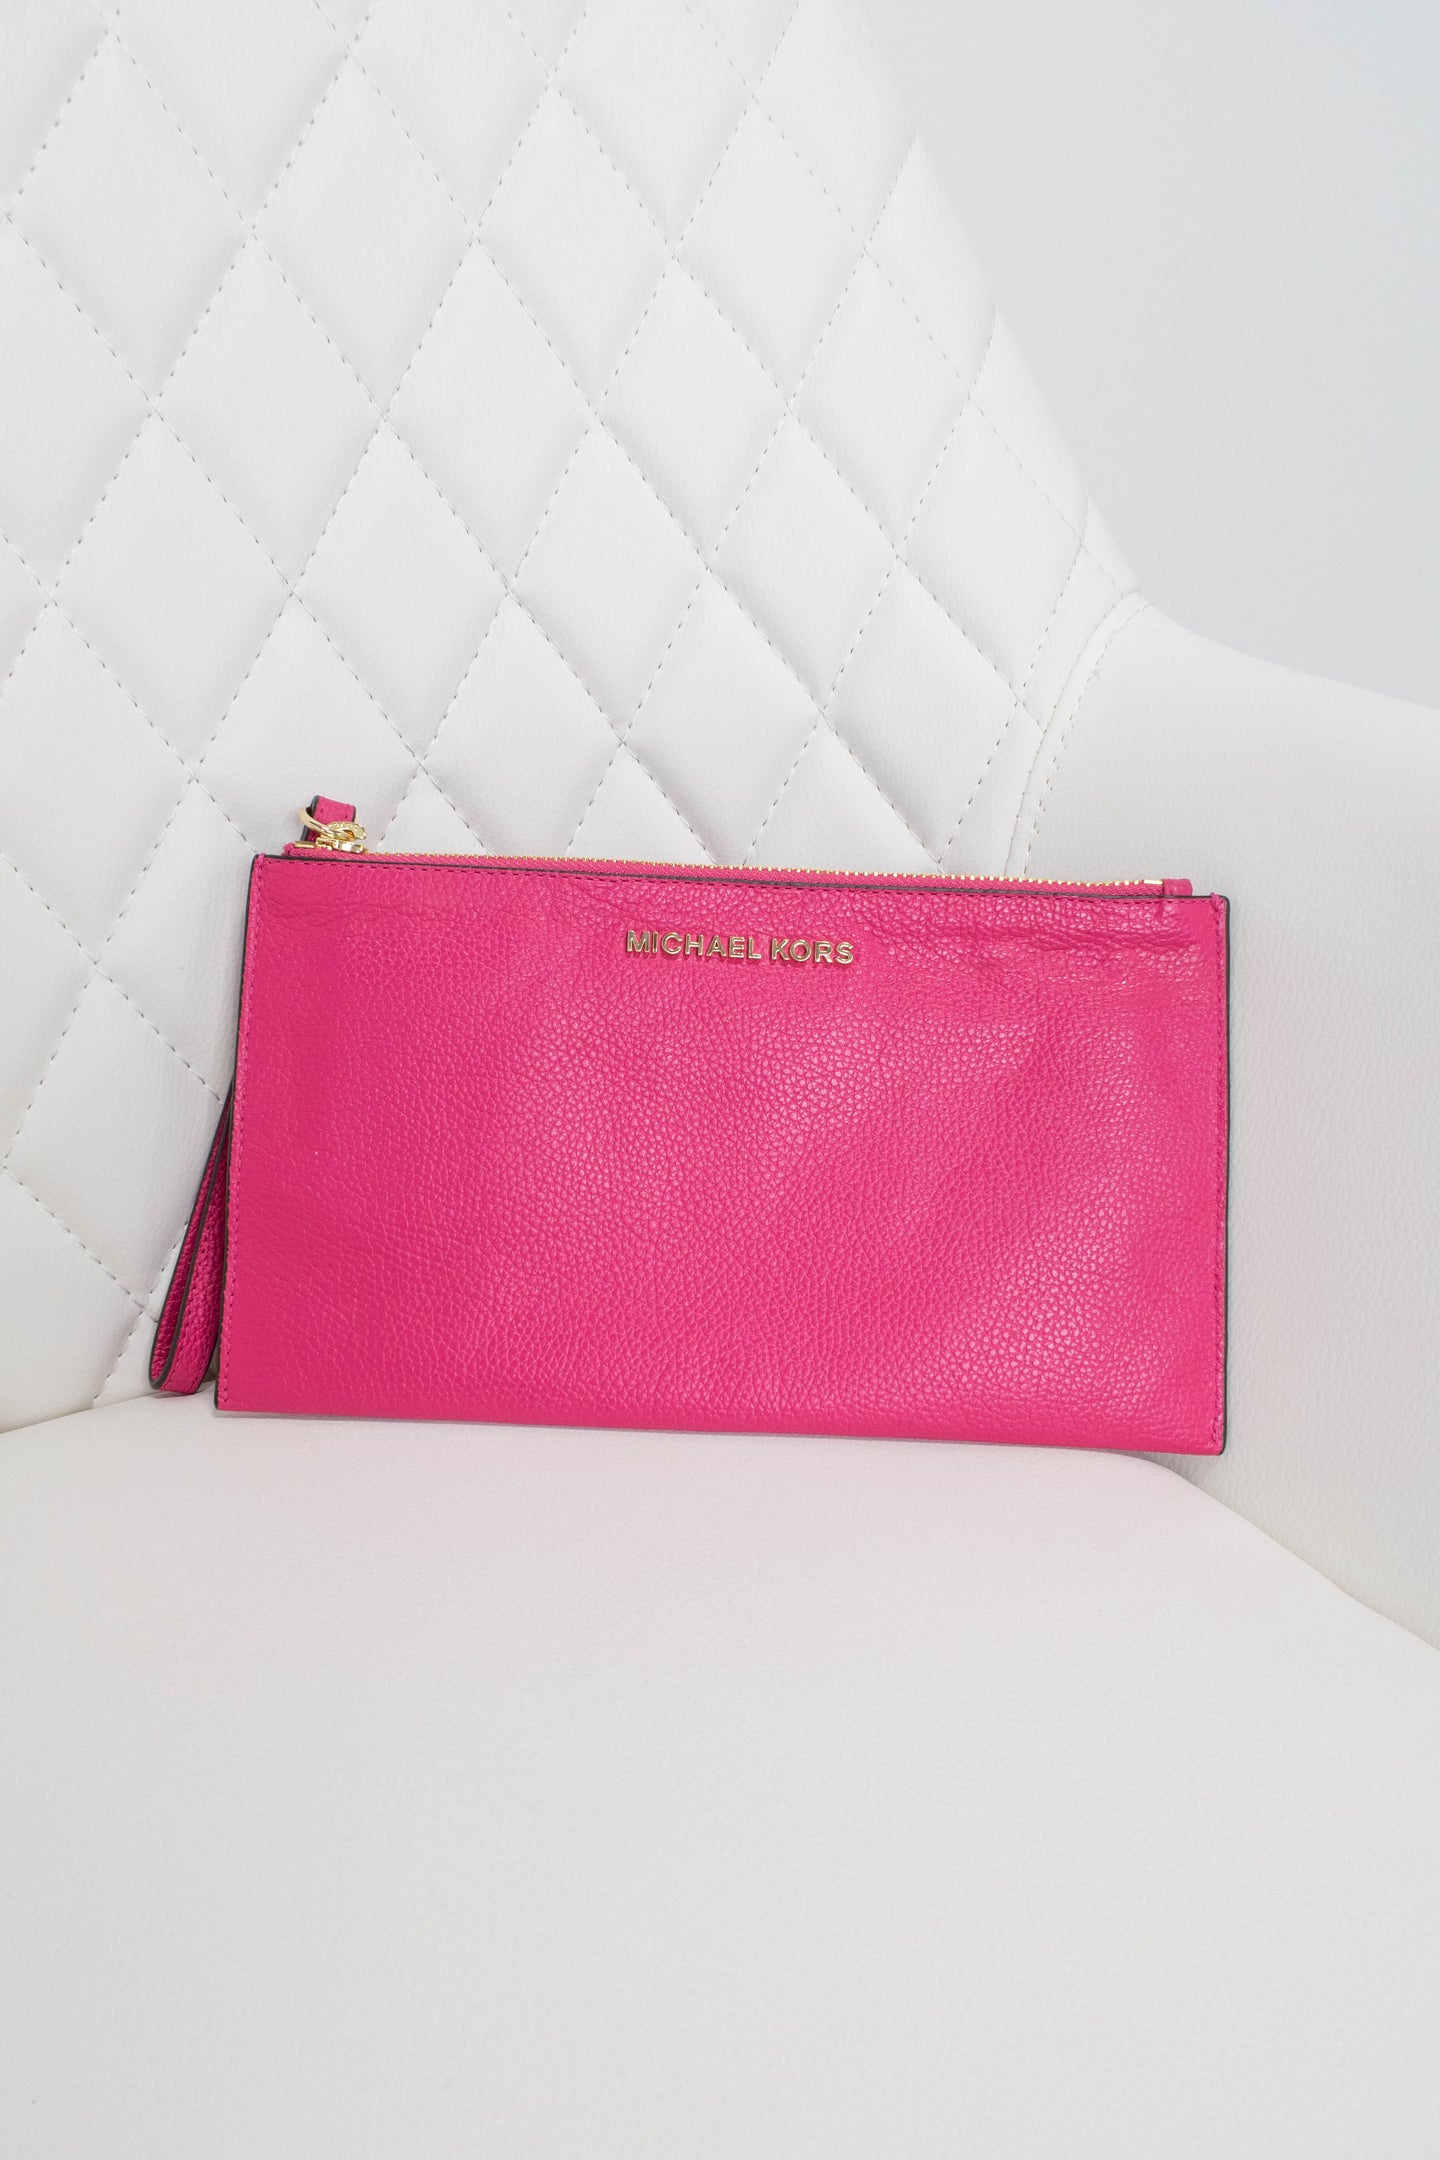 Michael Kors Pink Leather Wristlet